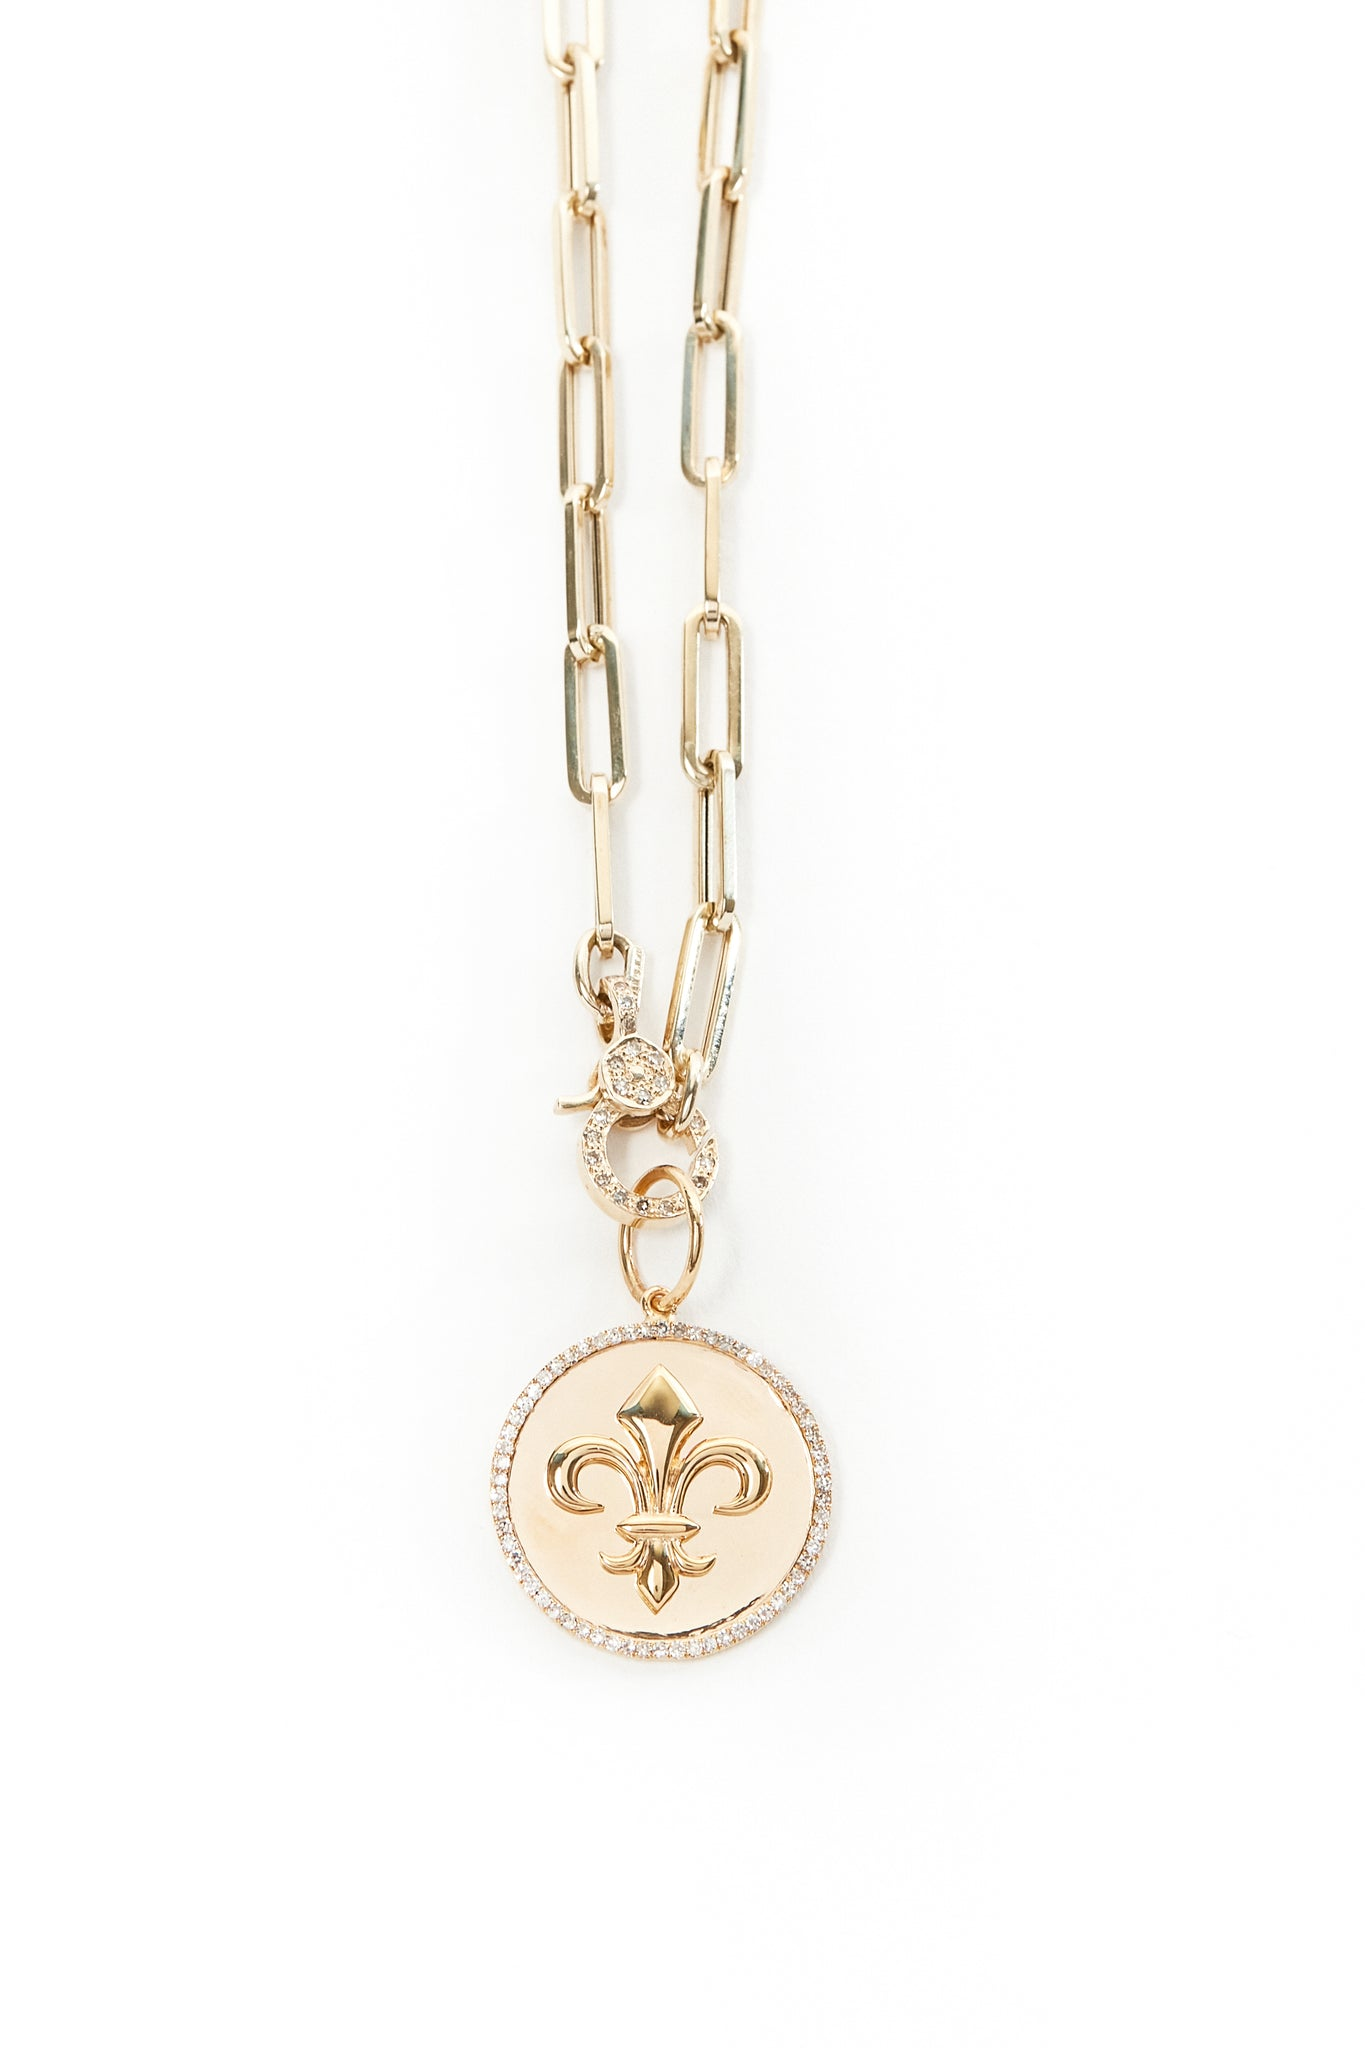 Gold and Diamond Fleur de Lis Pendant